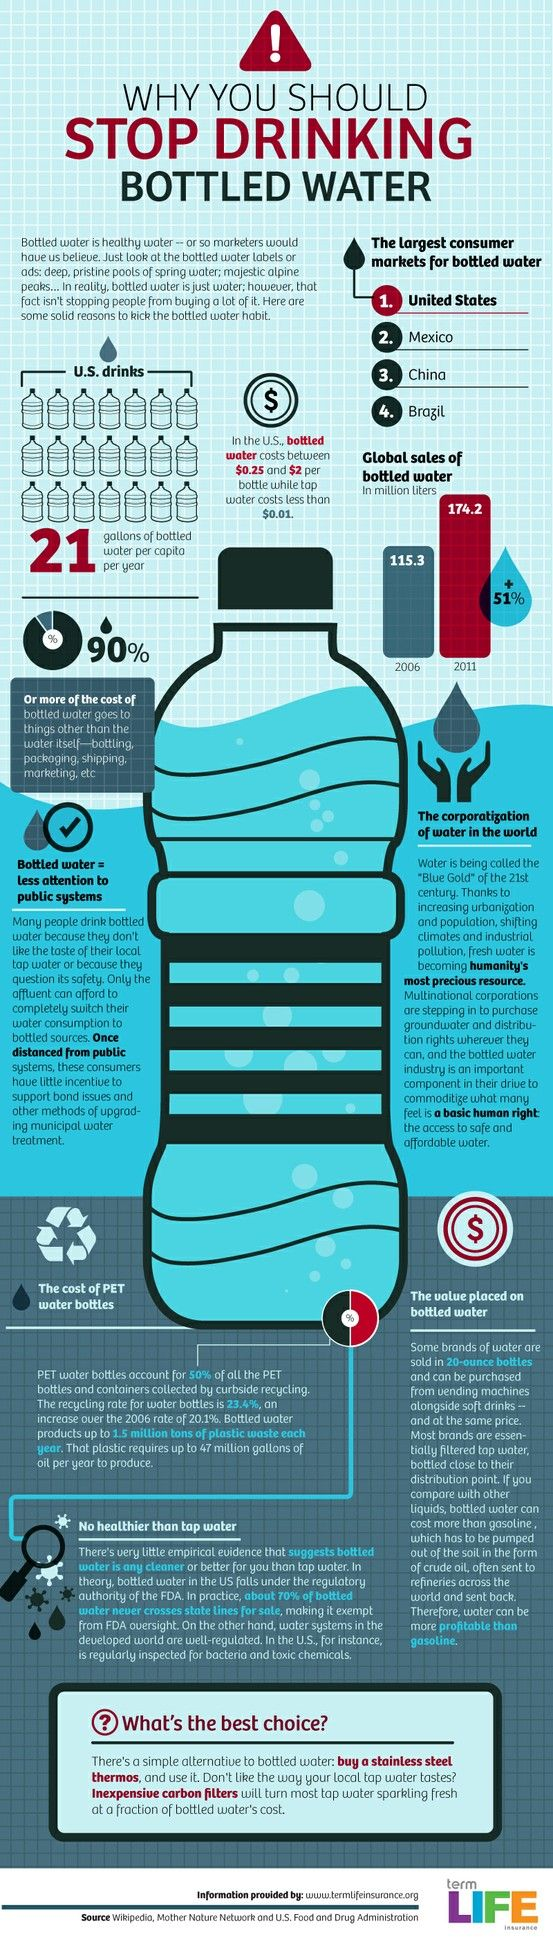 Http Www 2uidea Com Category Water Filter Why You Should Stop Drinking Bottle Water With Images Water Facts Stop Drinking Infographic